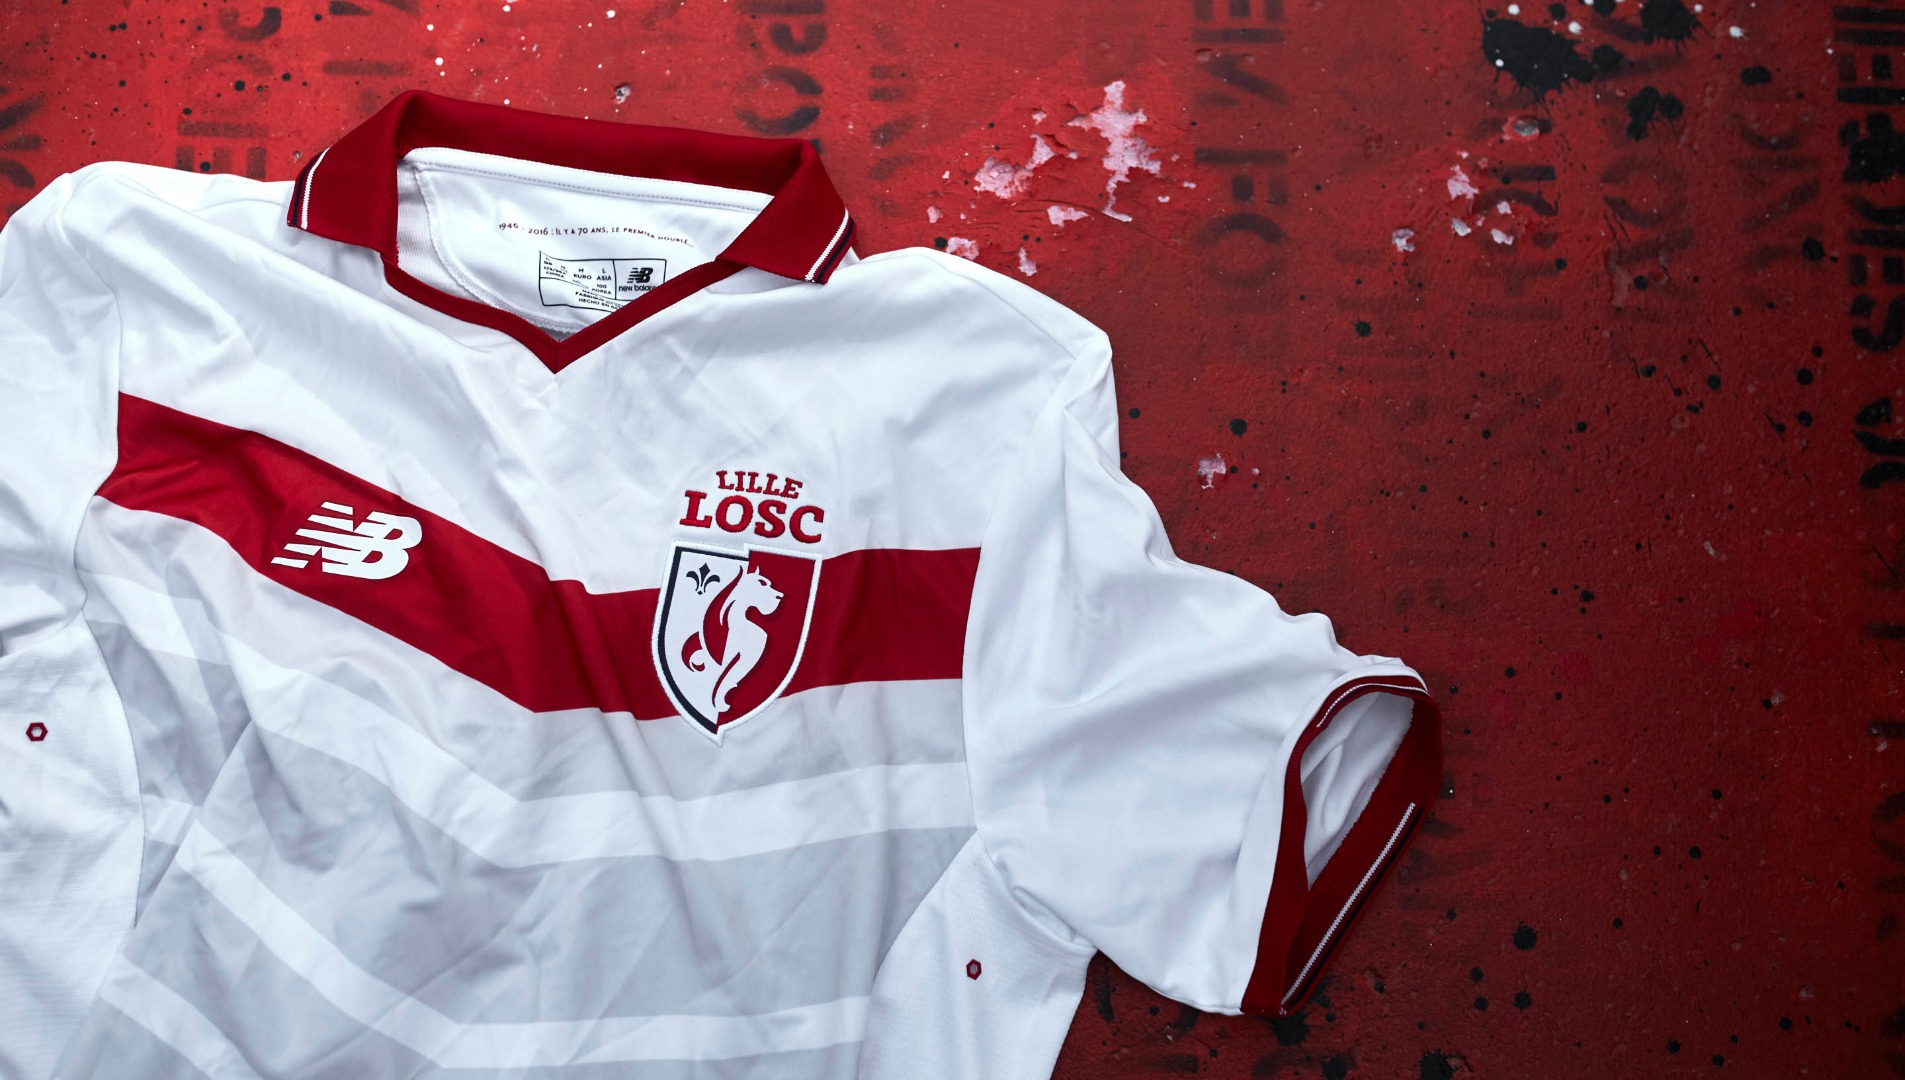 LOSC Lille 2016 17 home kits by New Balance - SoccerBible 58a2d42e2